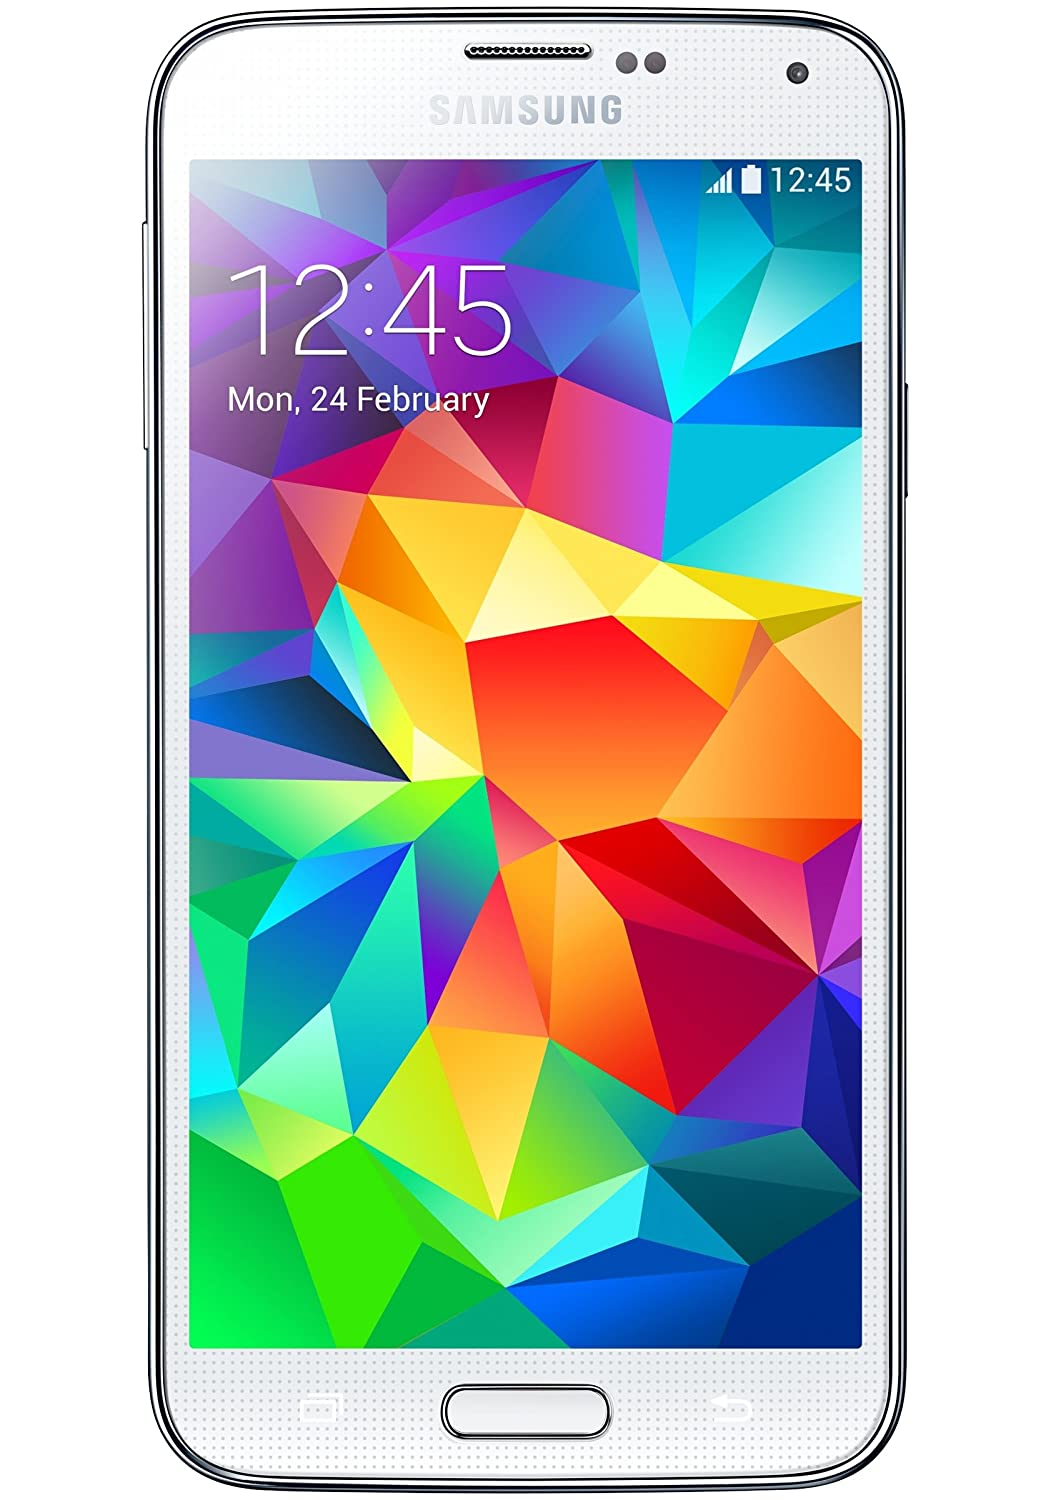 Samsung Galaxy S5 SM-G900H Exyon Quad Core 1.9GHz processor, 16GB,  Factory Unlocked International Version WHITE